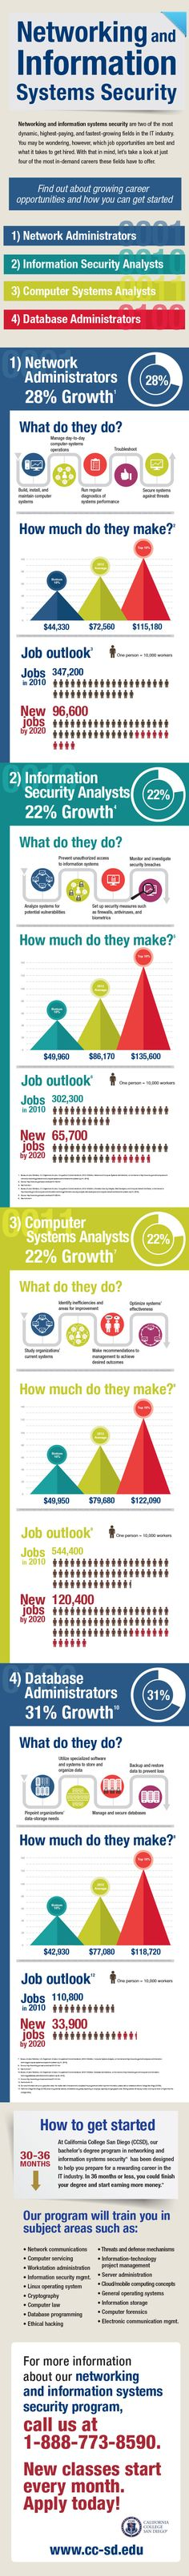 Networking and Information Systems Security are two of the most dynamic, highest-paying, and fastest-growing fields in the IT industry. There are several opportunities for high-demand careers such as network administrators, information security analysts, computer systems analysts, or database administrators. Find out more about these careers in this infographic.